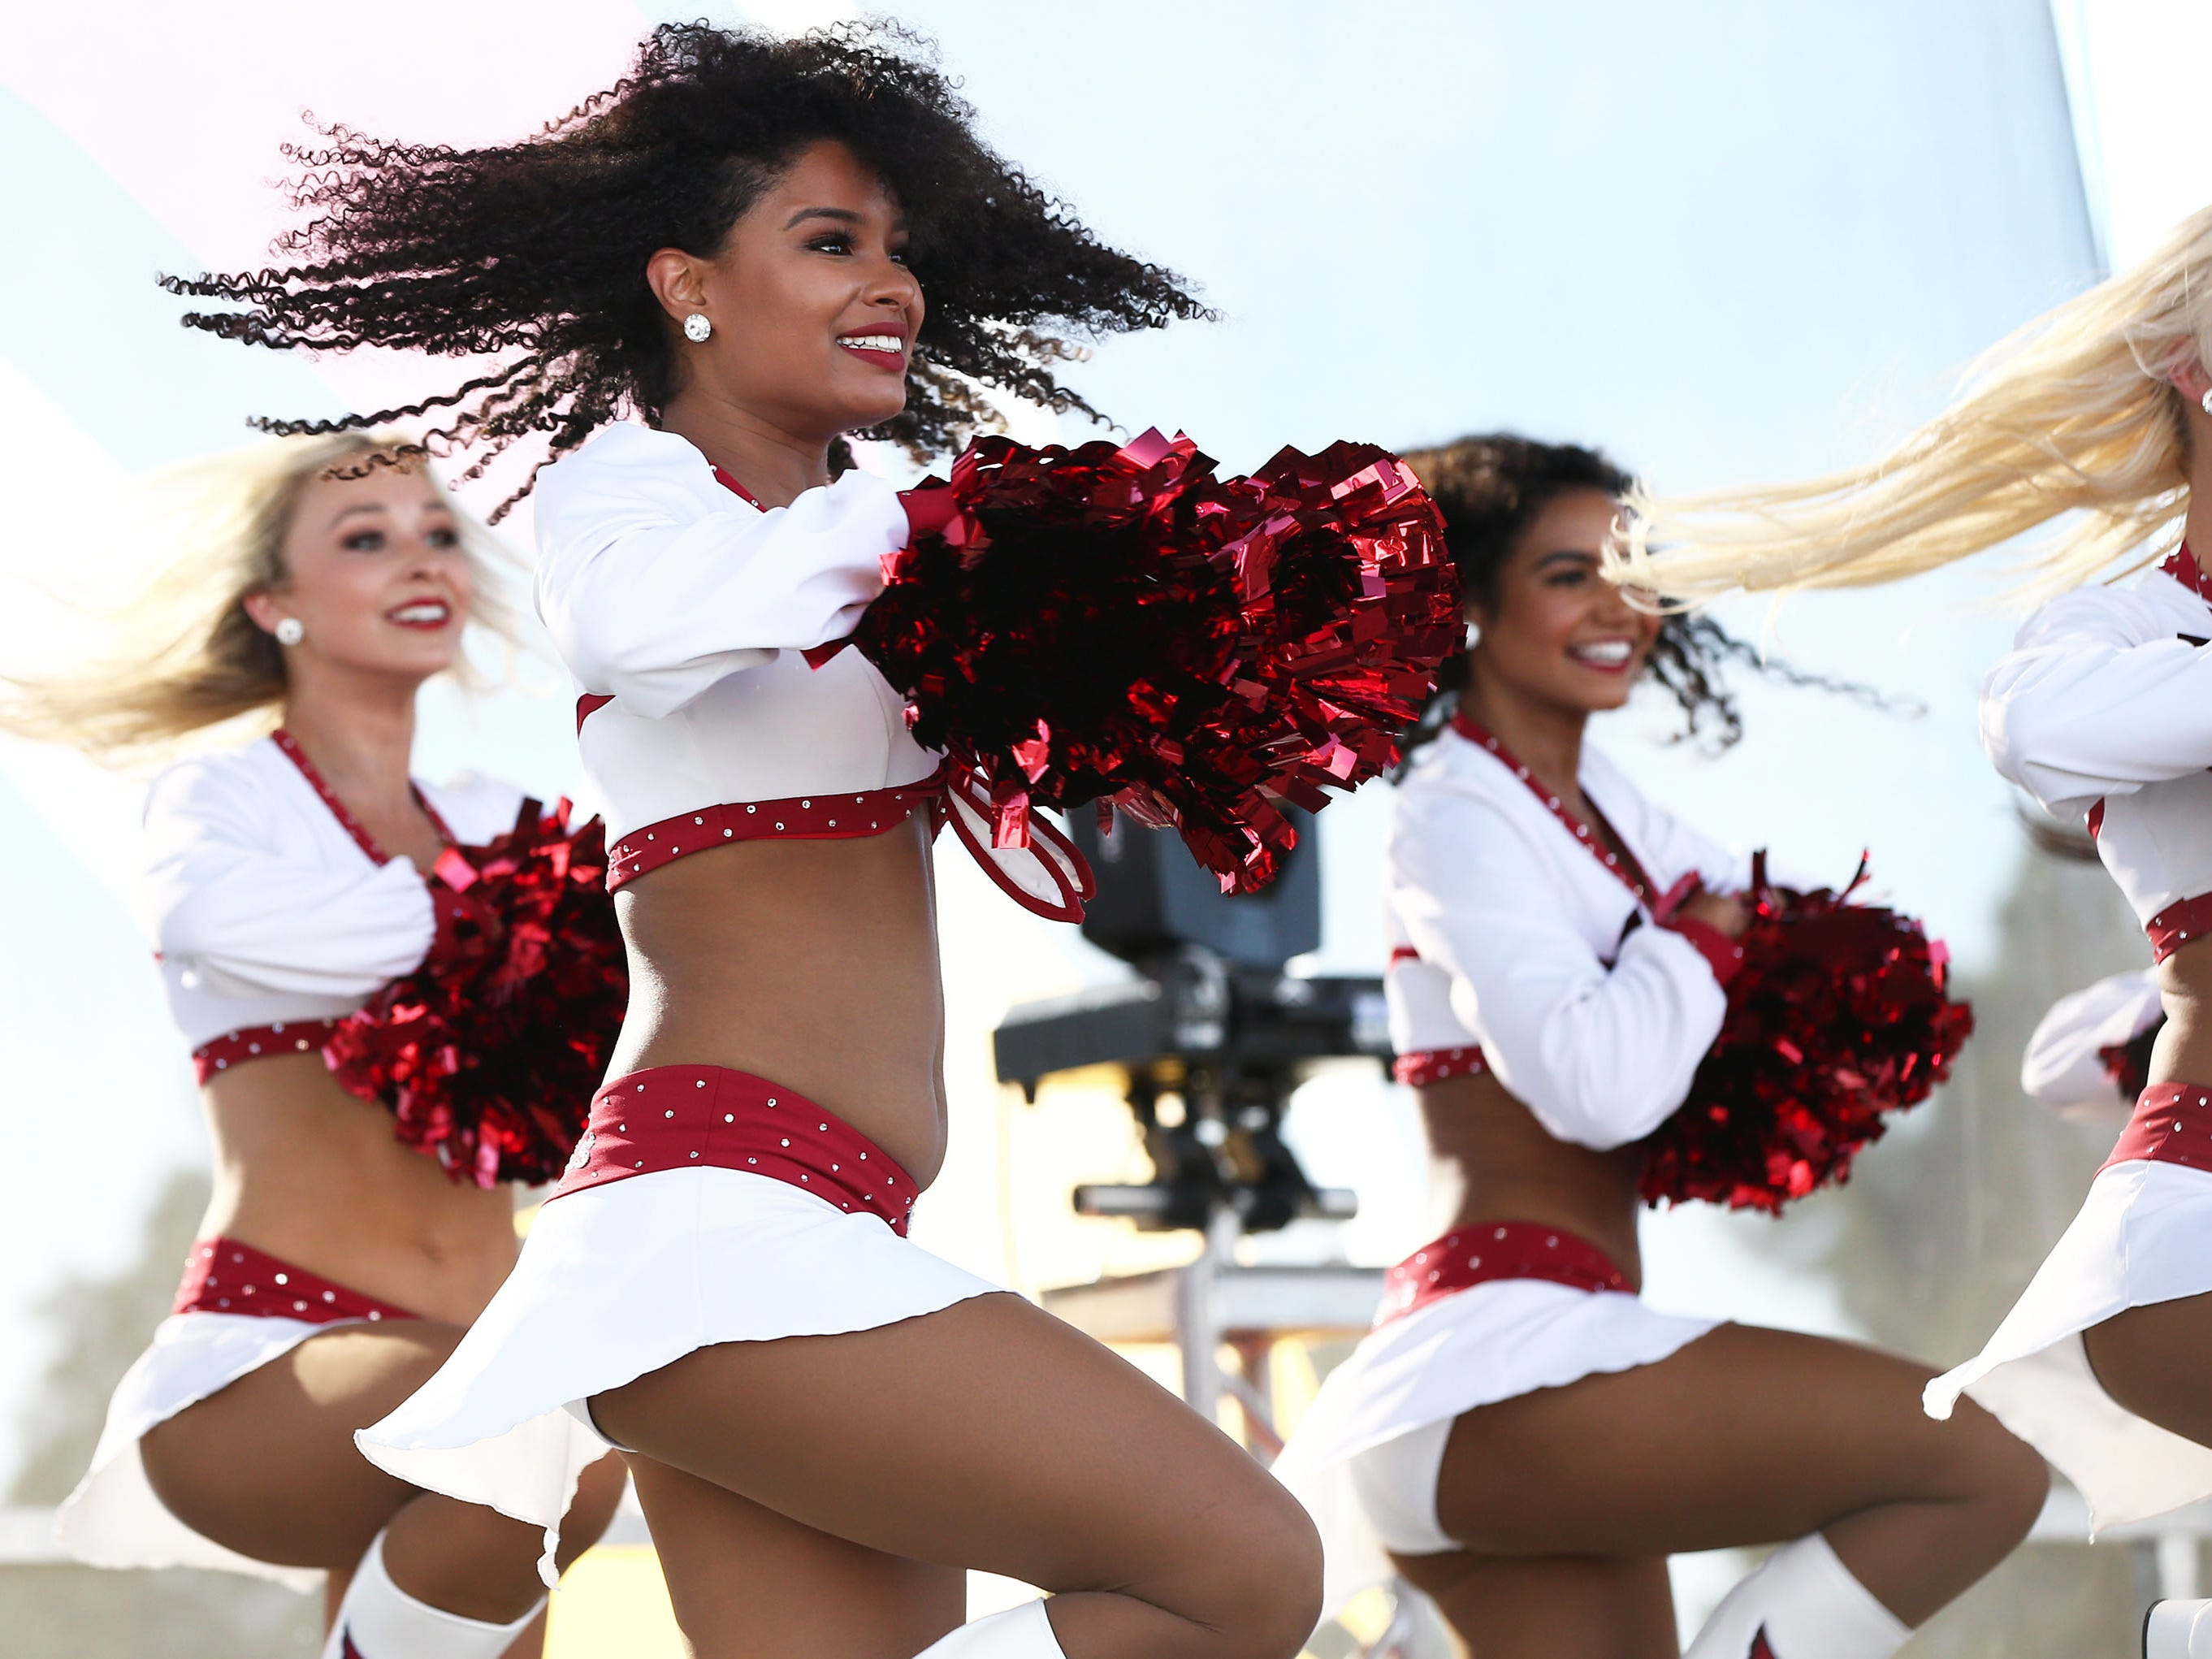 The Arizona Cardinals cheerleaders perform during the NFL Draft watch party at State Farm Stadium on Apr. 25, 2019 in Glendale, Ariz.